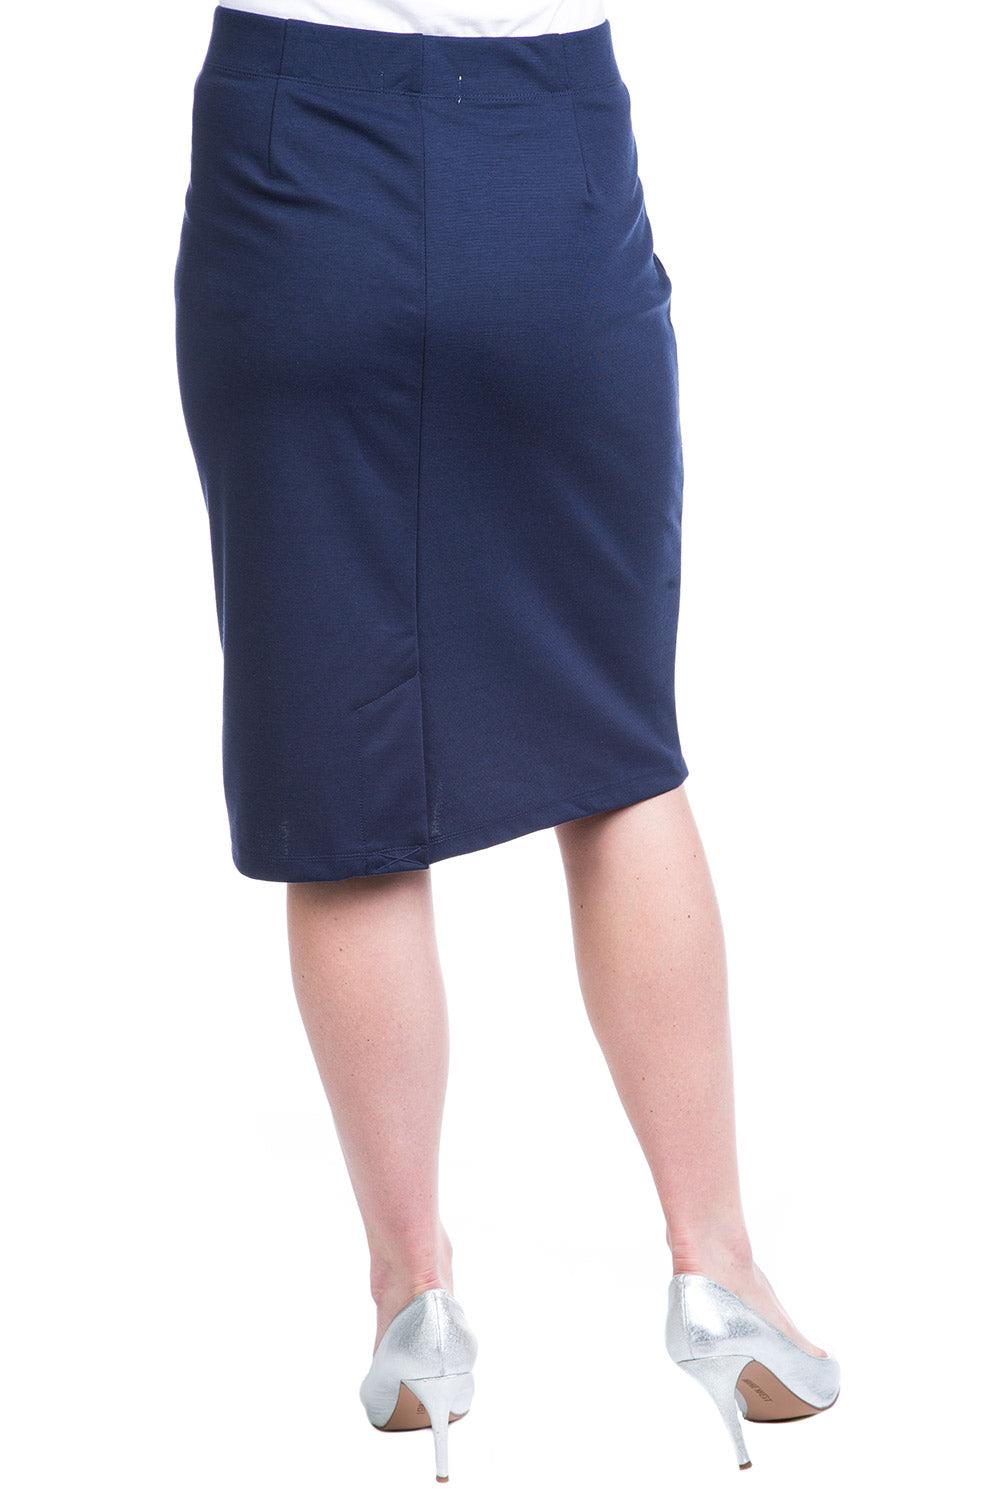 It Is Official Skirt In Navy